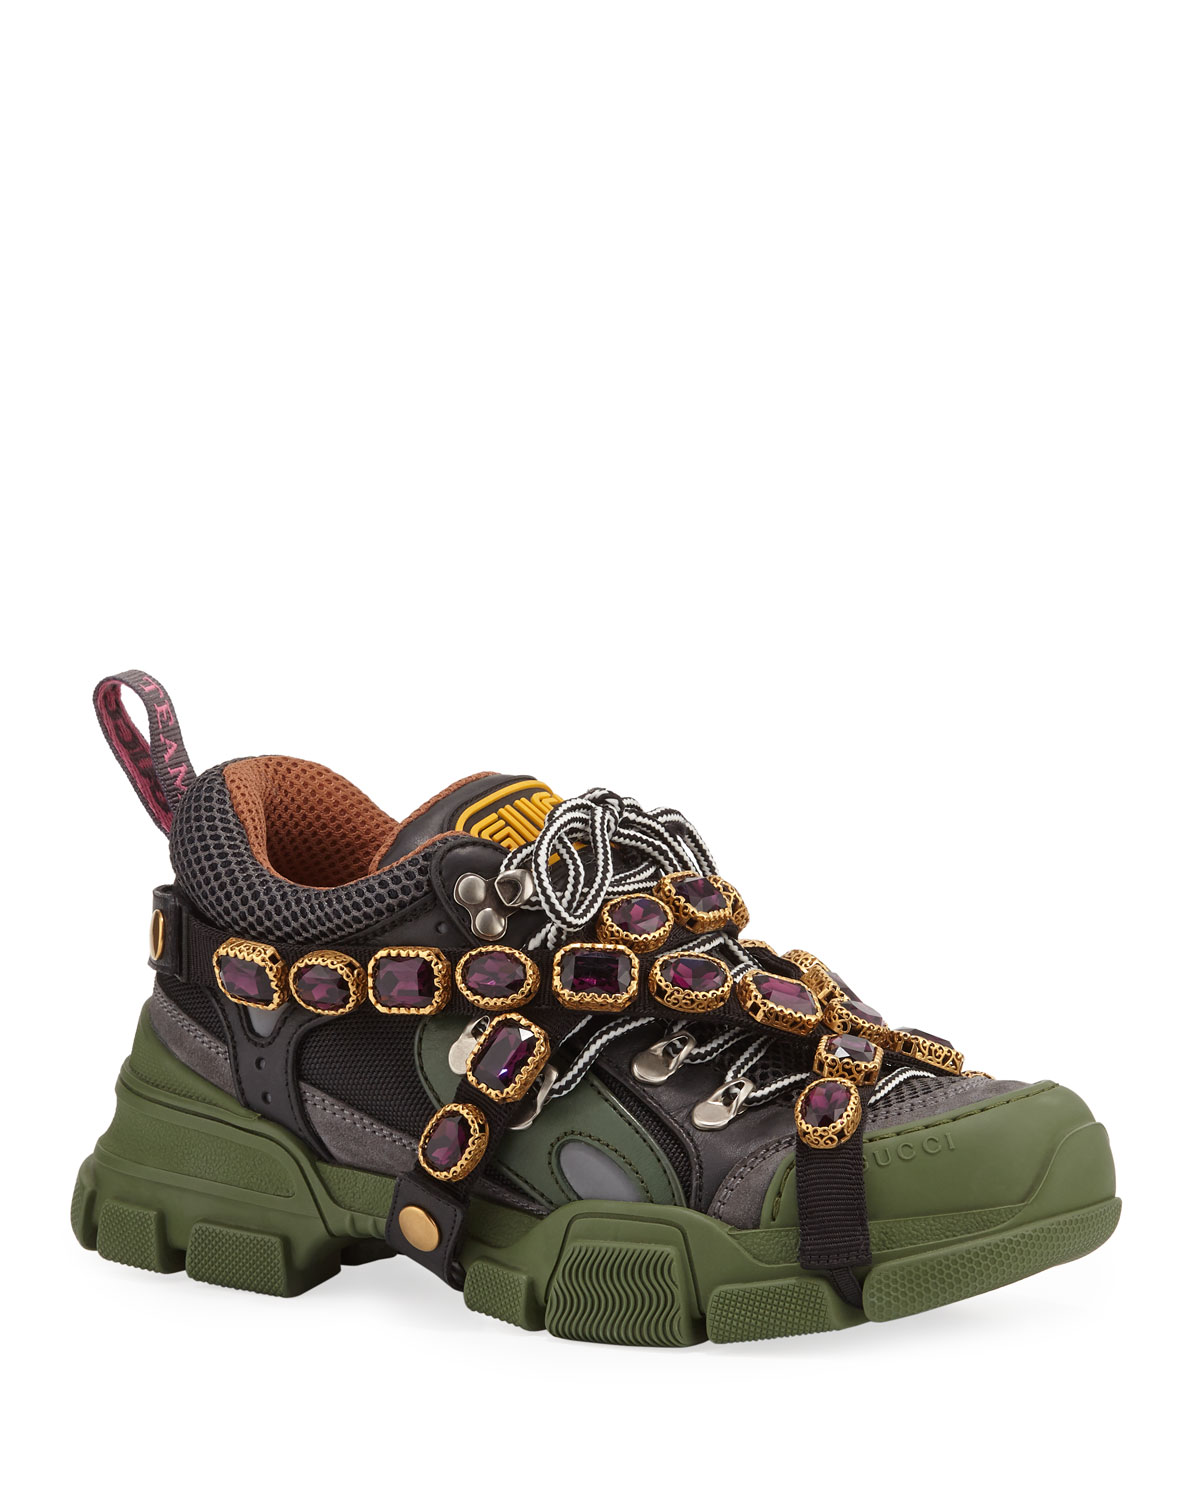 Flashtrek Hiker Sneaker With Chain Strap